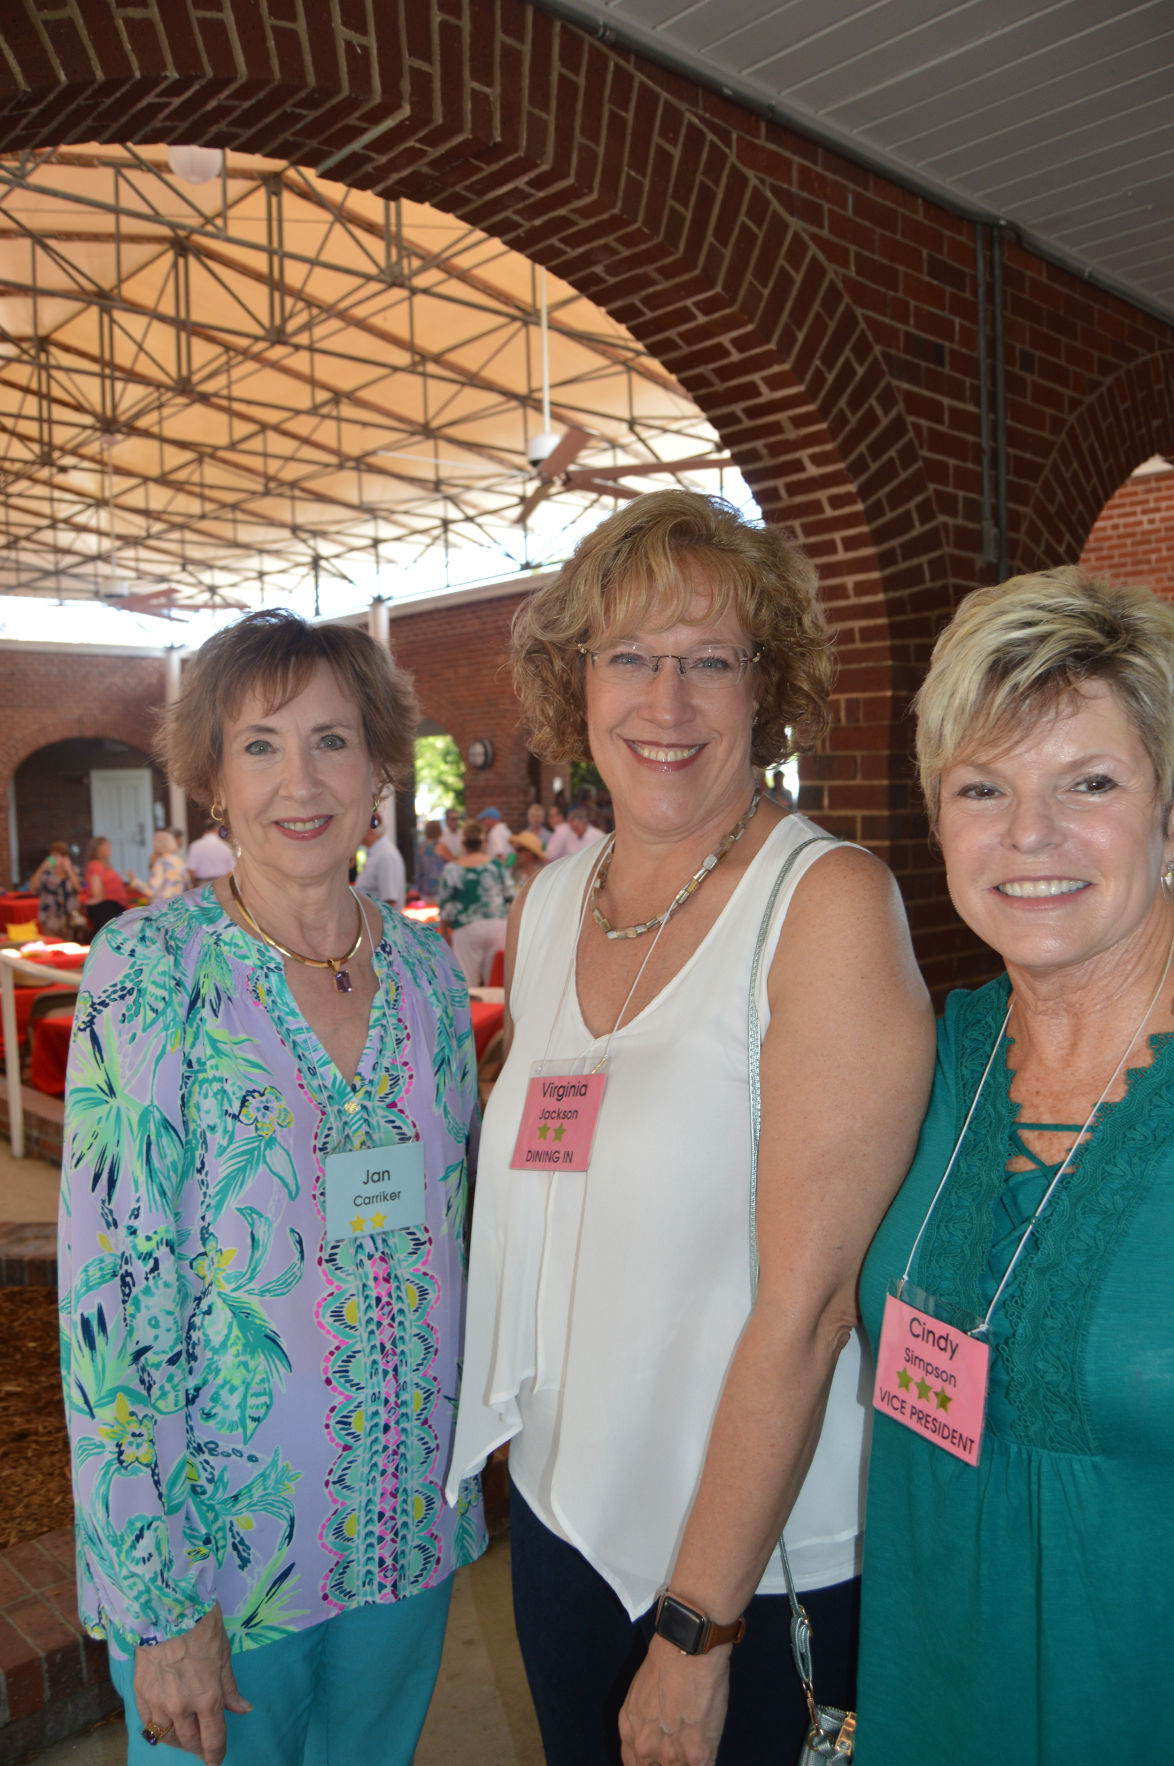 Jan Carriker, left, Virginia Jackson, and Cindy Simpson.JPG